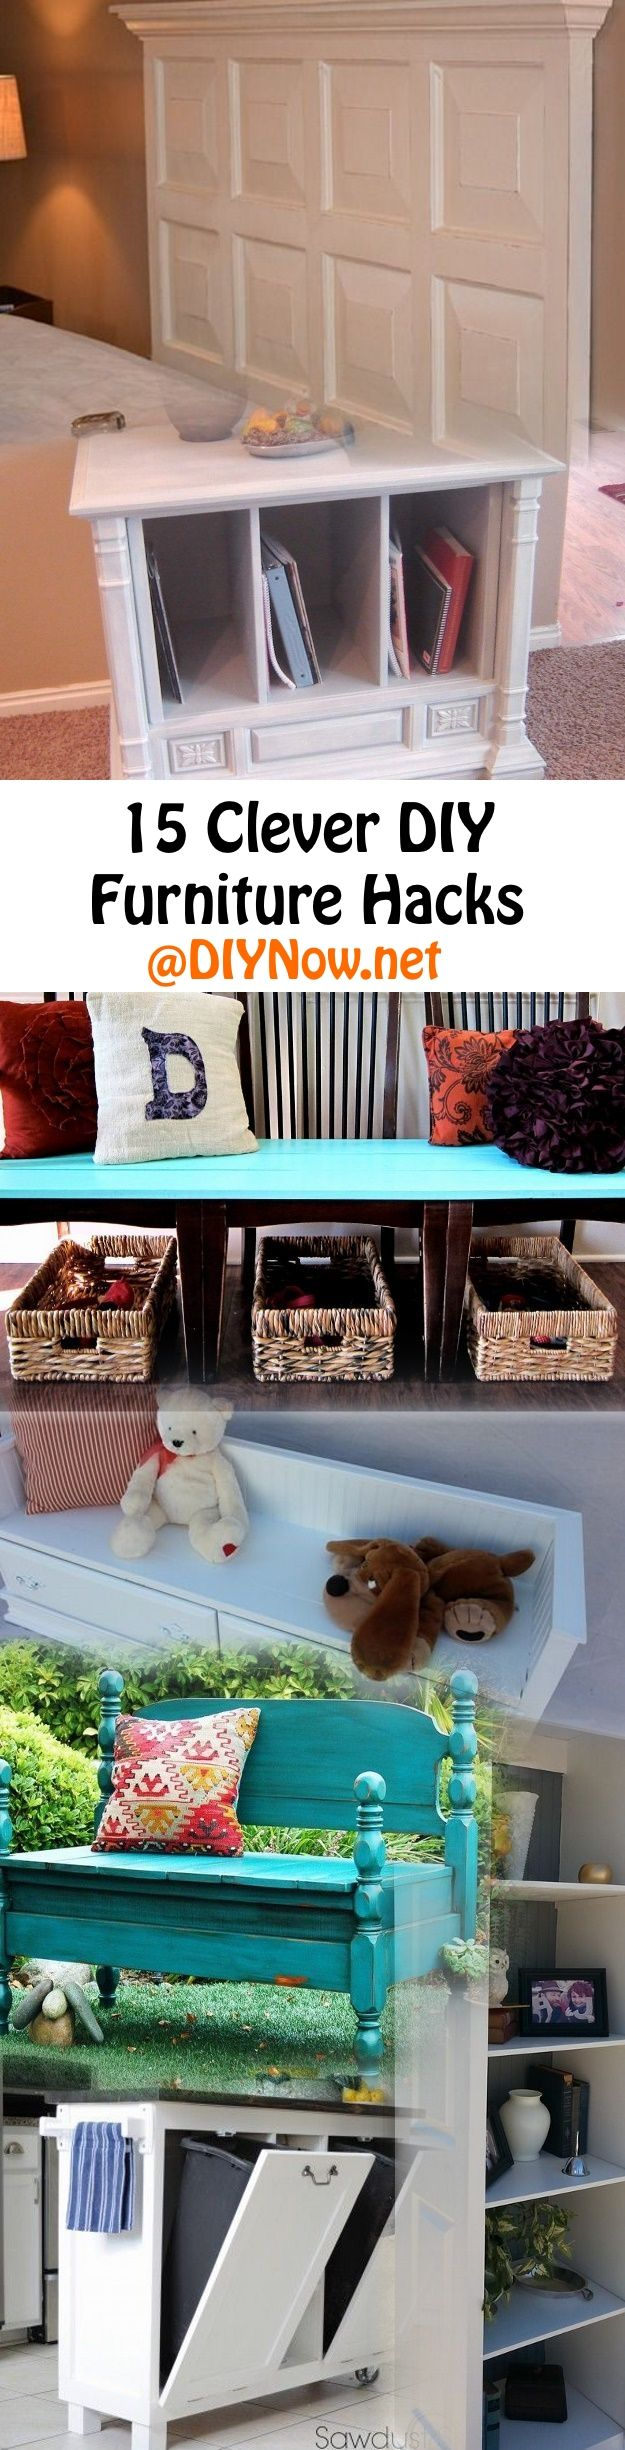 15 Clever DIY Furniture Hacks